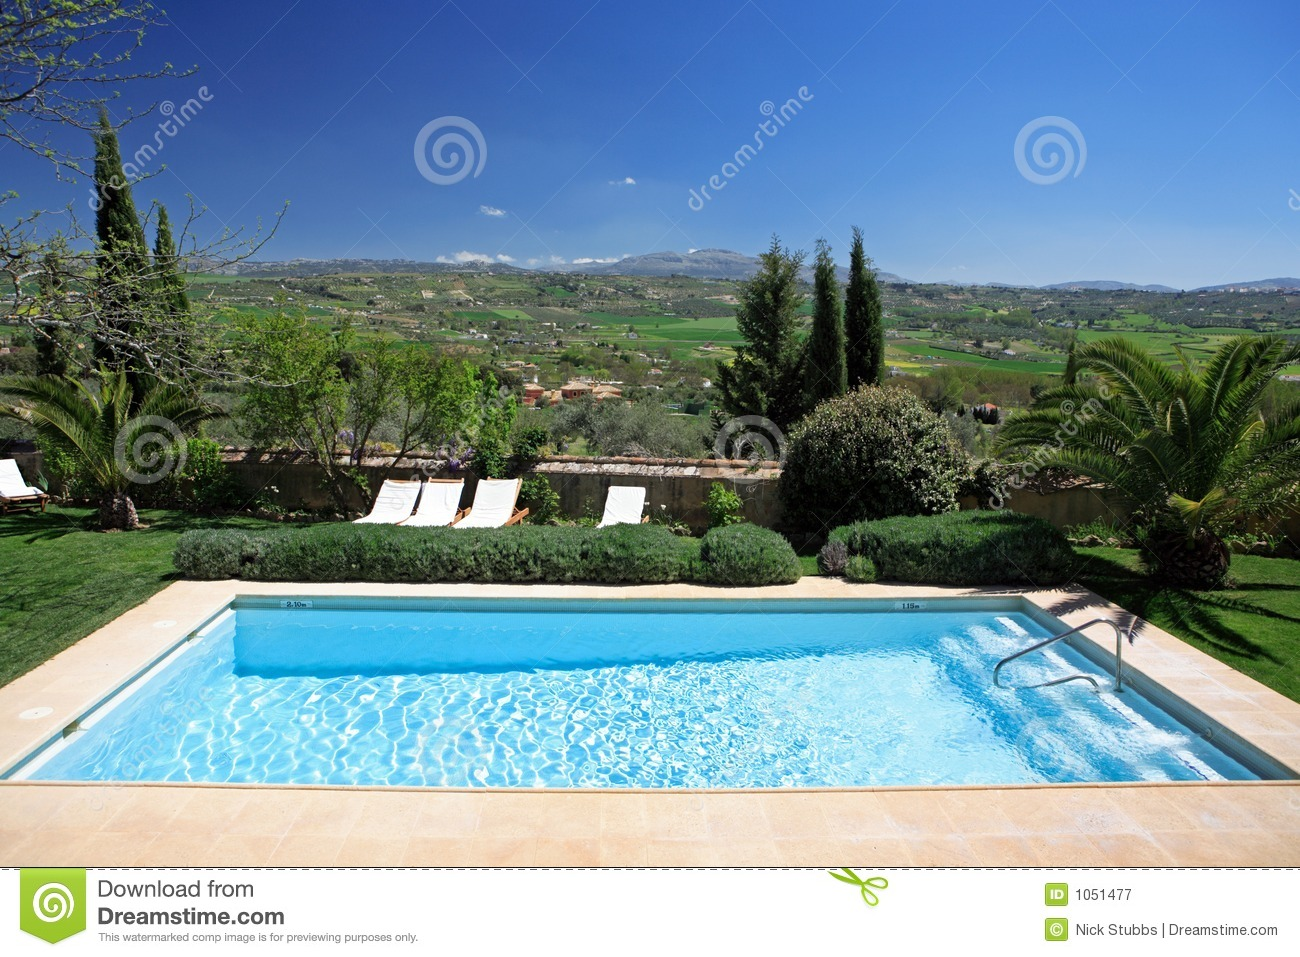 Luxury rustic hotel and swimming pool in countryside stock for Imagenes de piscinas rusticas